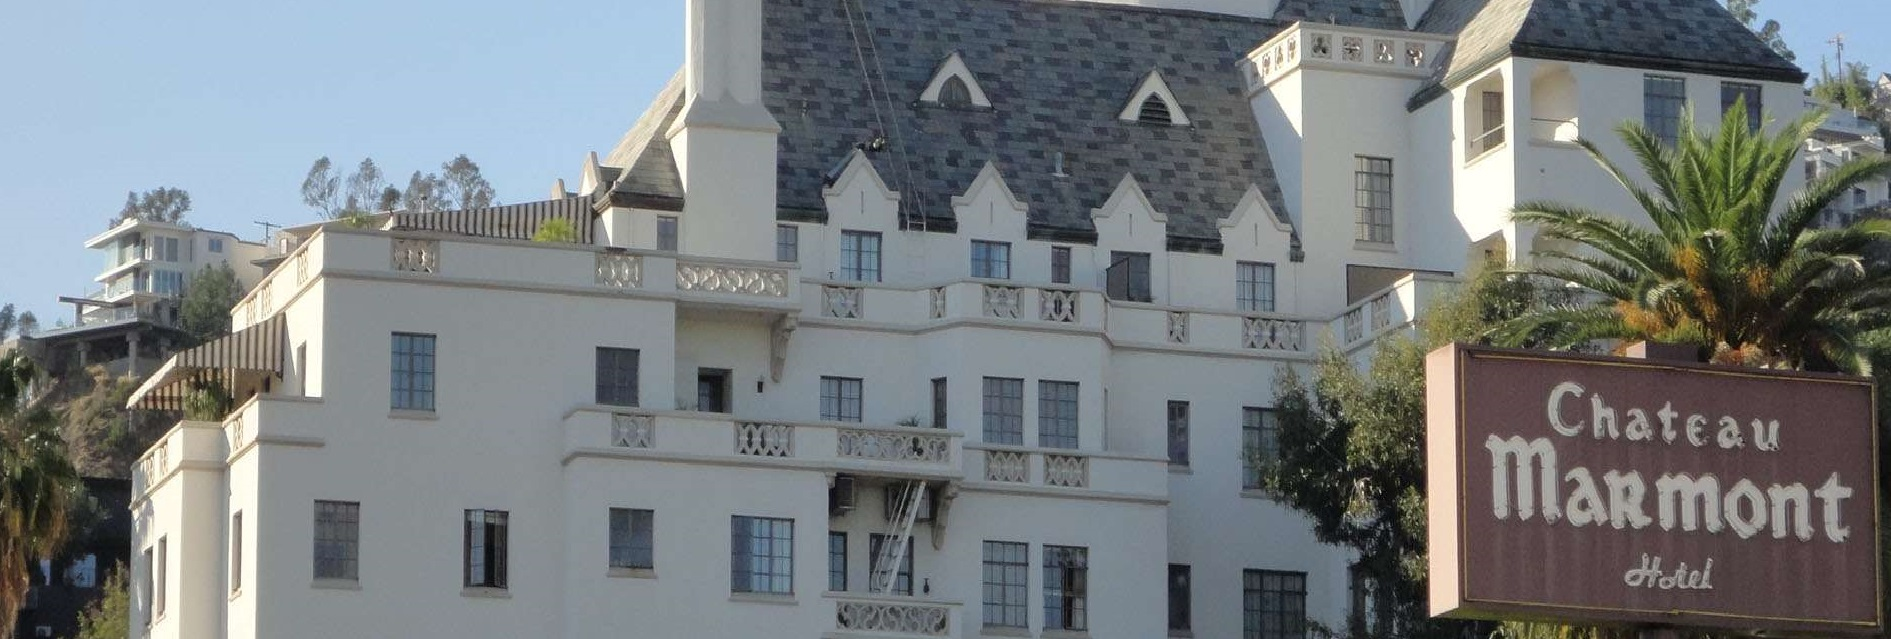 An outside shot of the Chateau Marmont